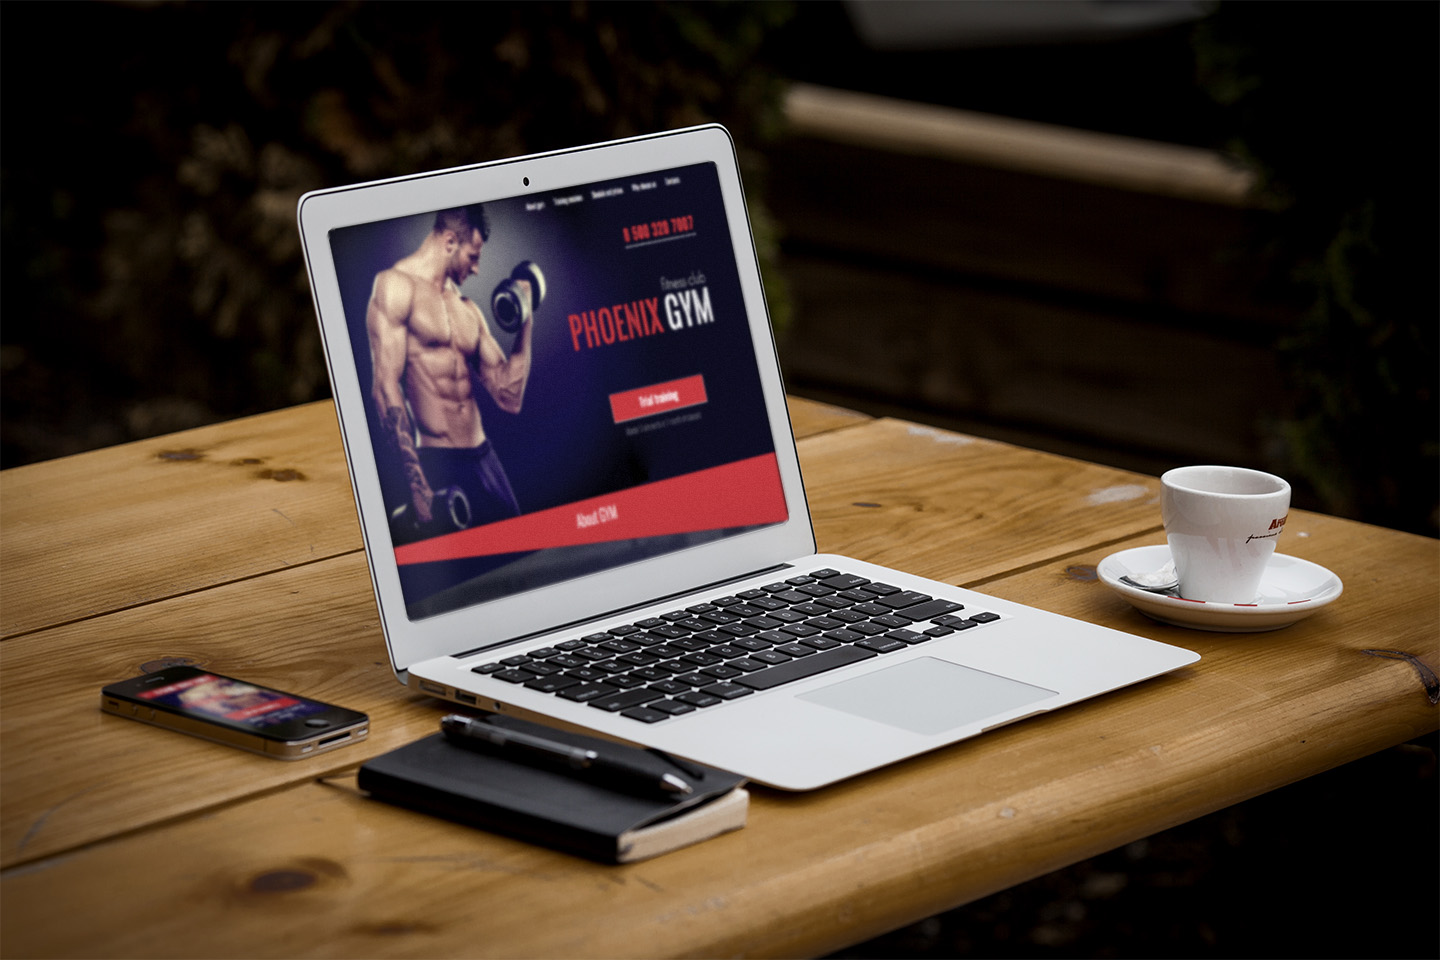 Phoenix Gym - Gym and Fitness Club Responsive HTML Template - 3